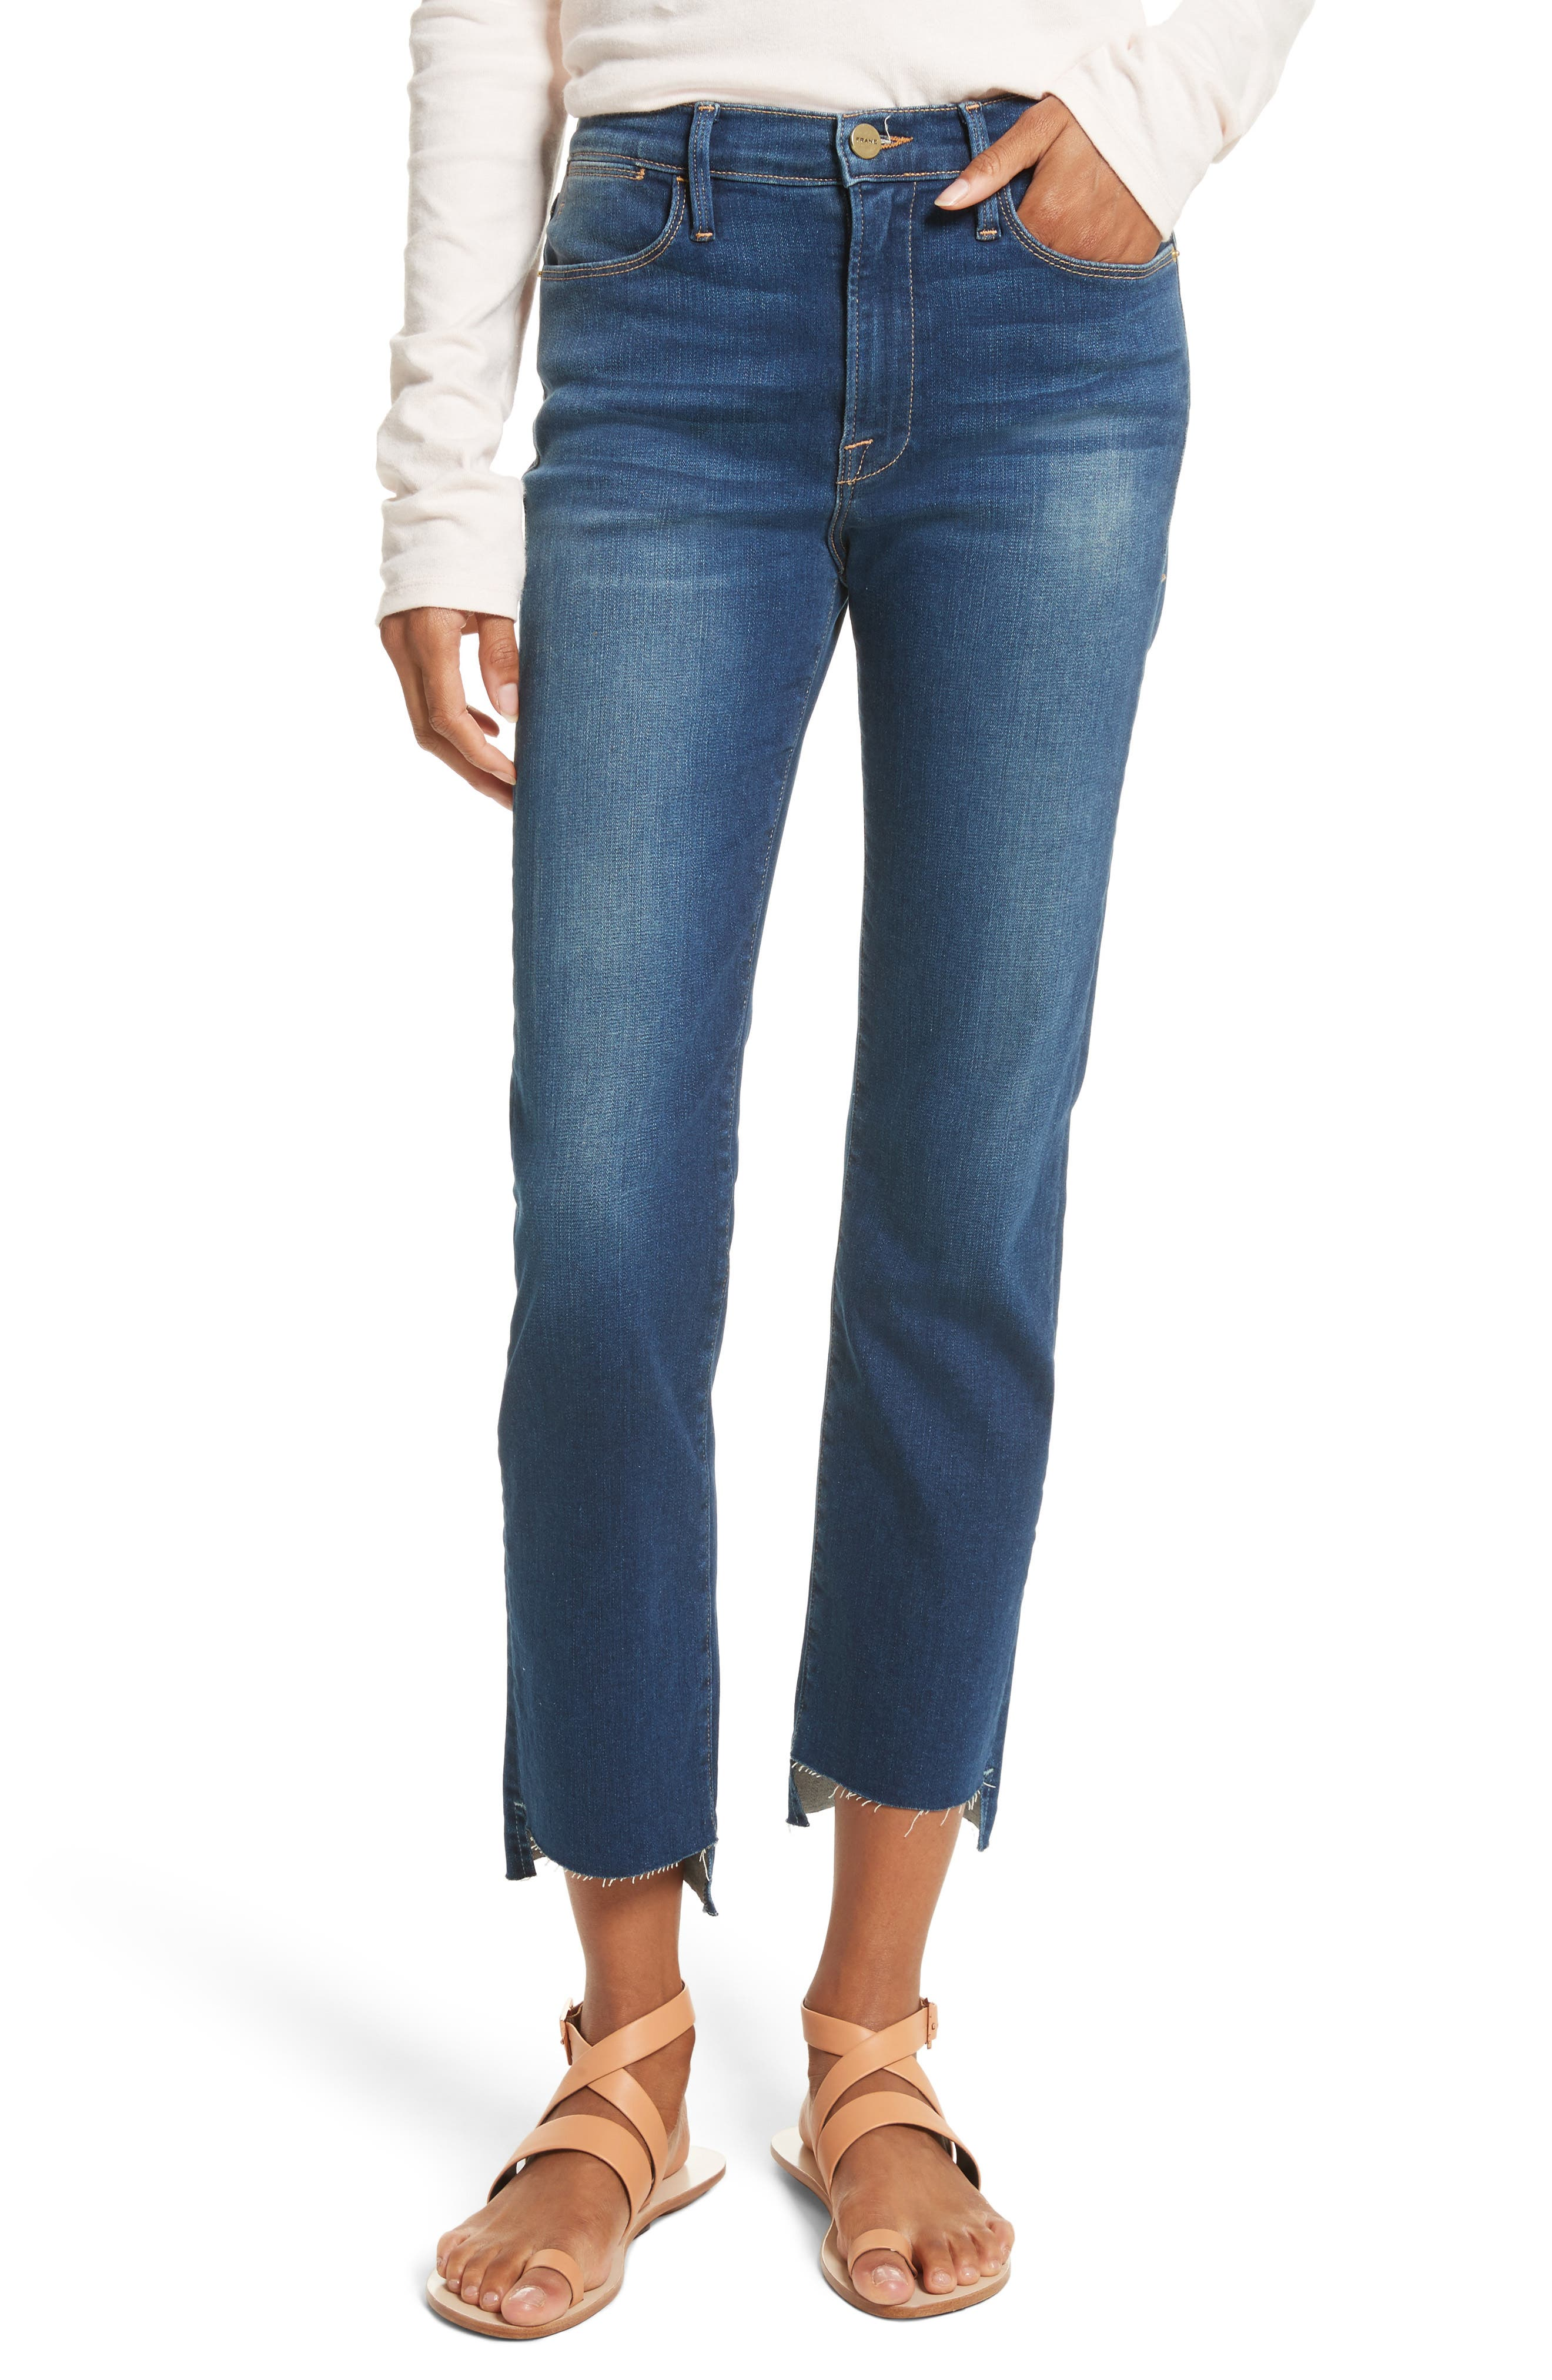 Le High Straight High Waist Raw Stagger Jeans,                             Main thumbnail 1, color,                             401